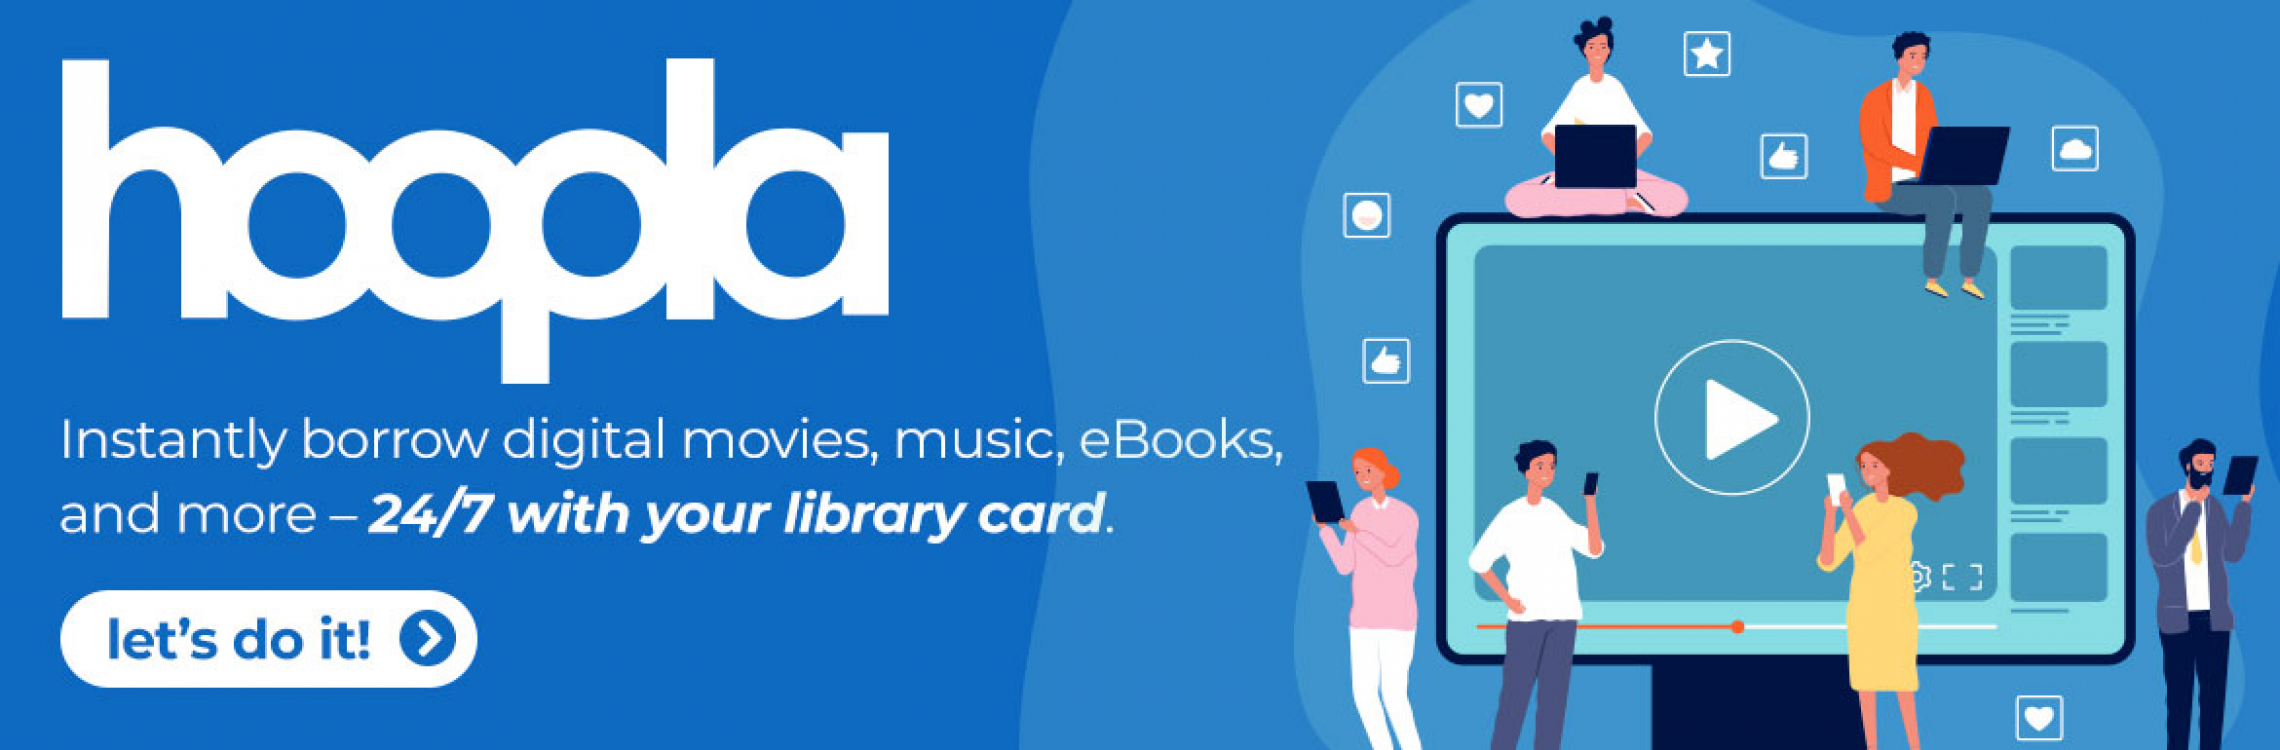 "hoopla slide that reads, ""Instantly borrow digital movies, music, eBooks, and more - 24/7 with your library card. let's do it!"